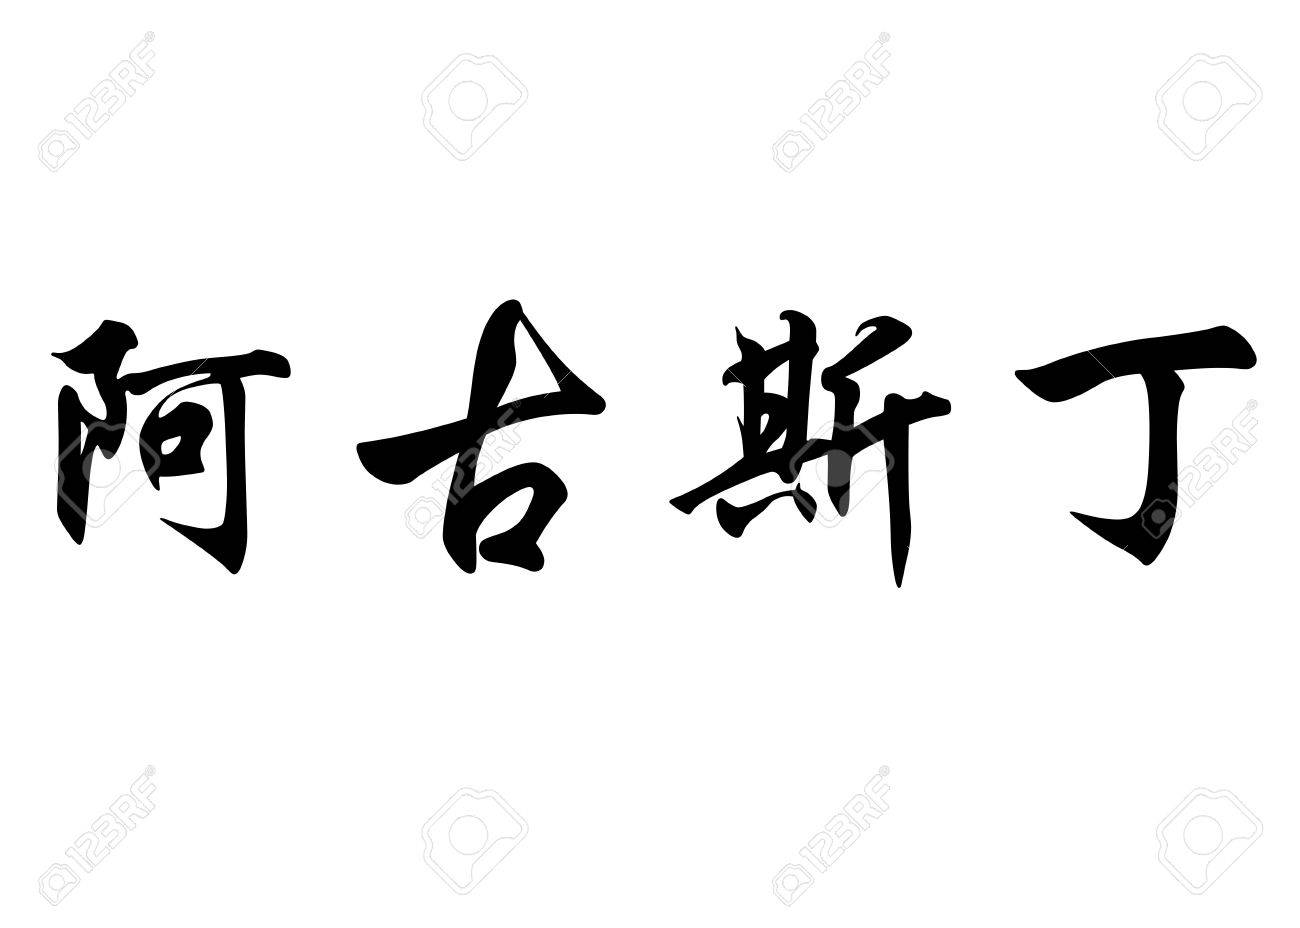 English Name Agustn In Chinese Kanji Calligraphy Characters Or